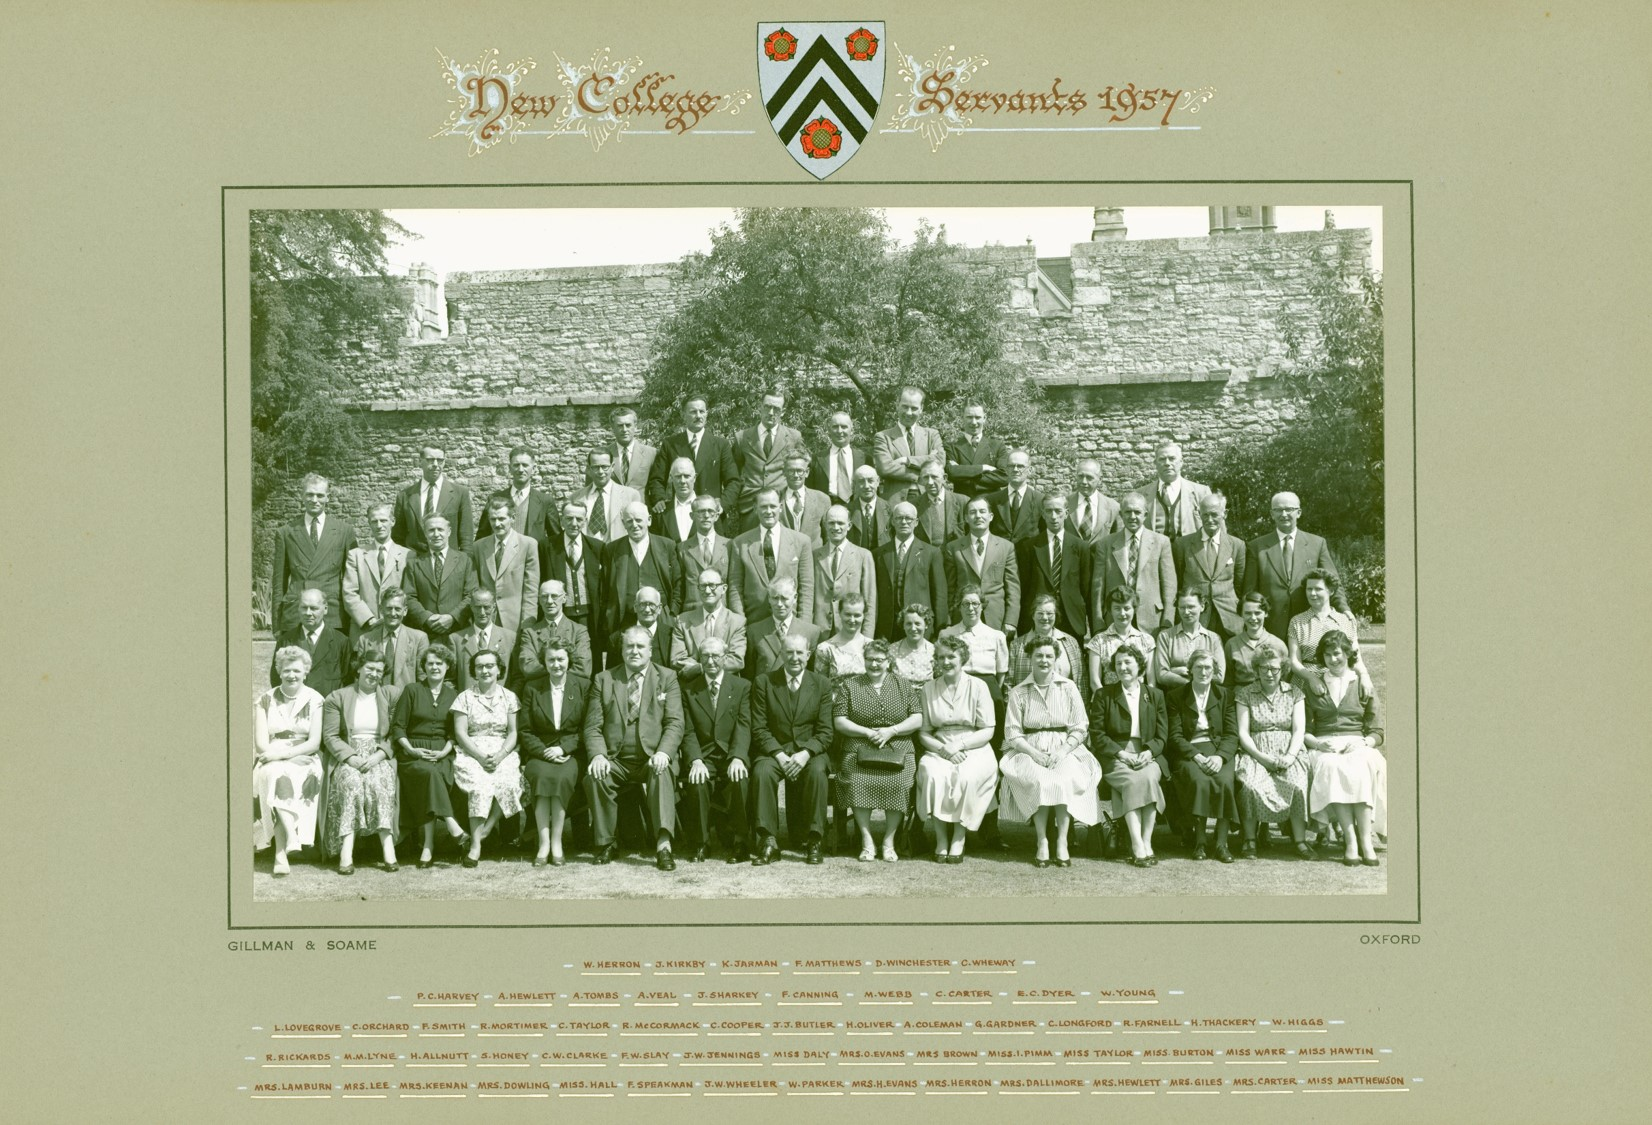 New College Staff 1957 (Gillman & Soame)